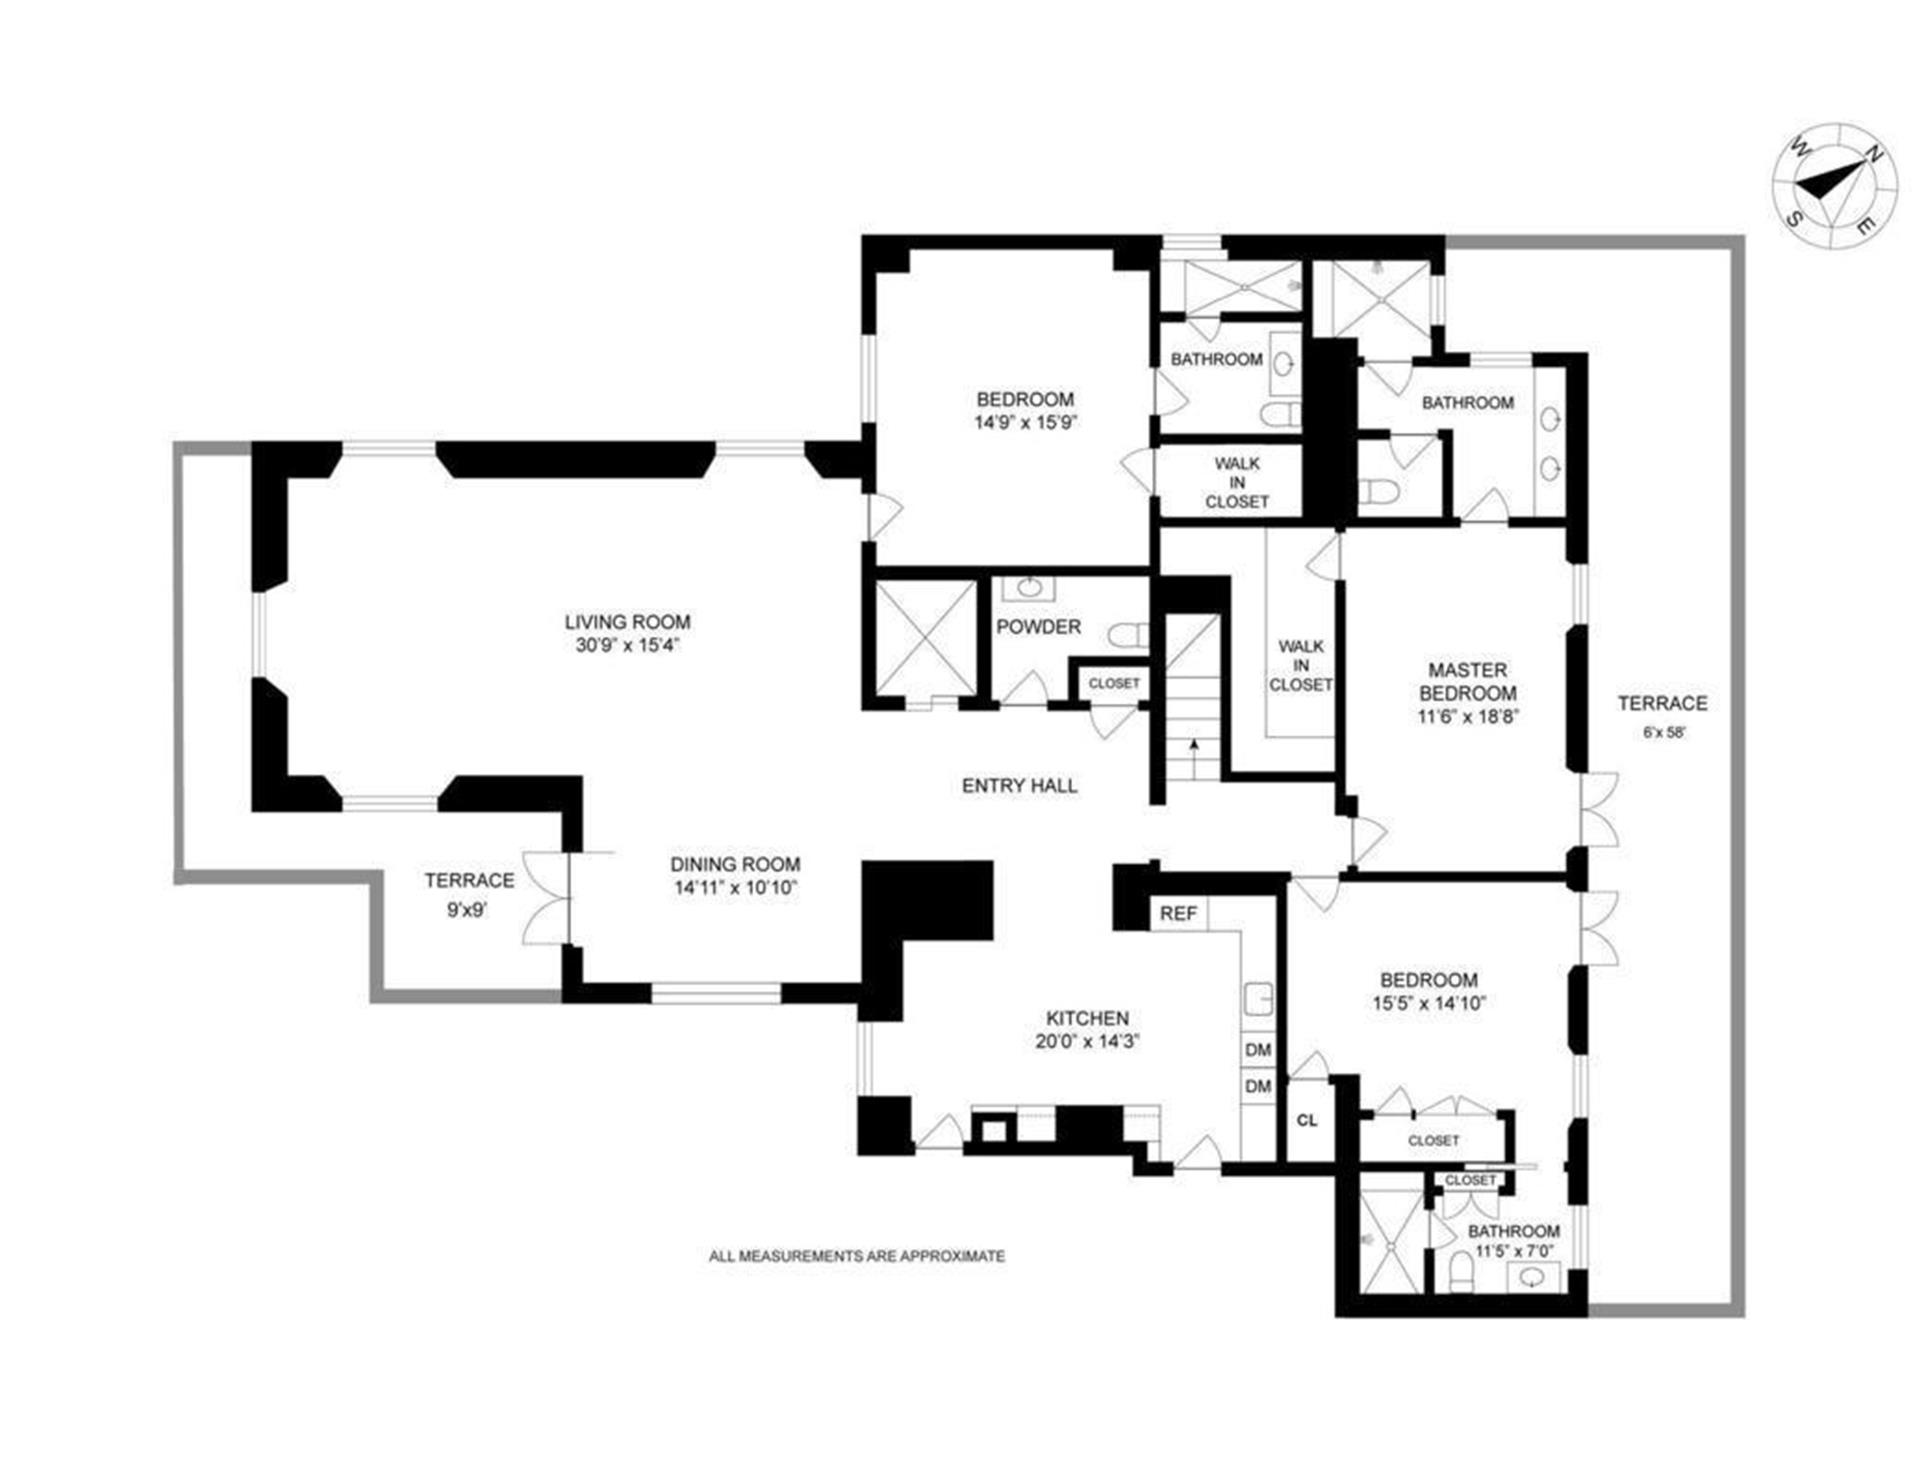 Floor plan of 510 Park Avenue, PENTHOUSEB - Upper East Side, New York